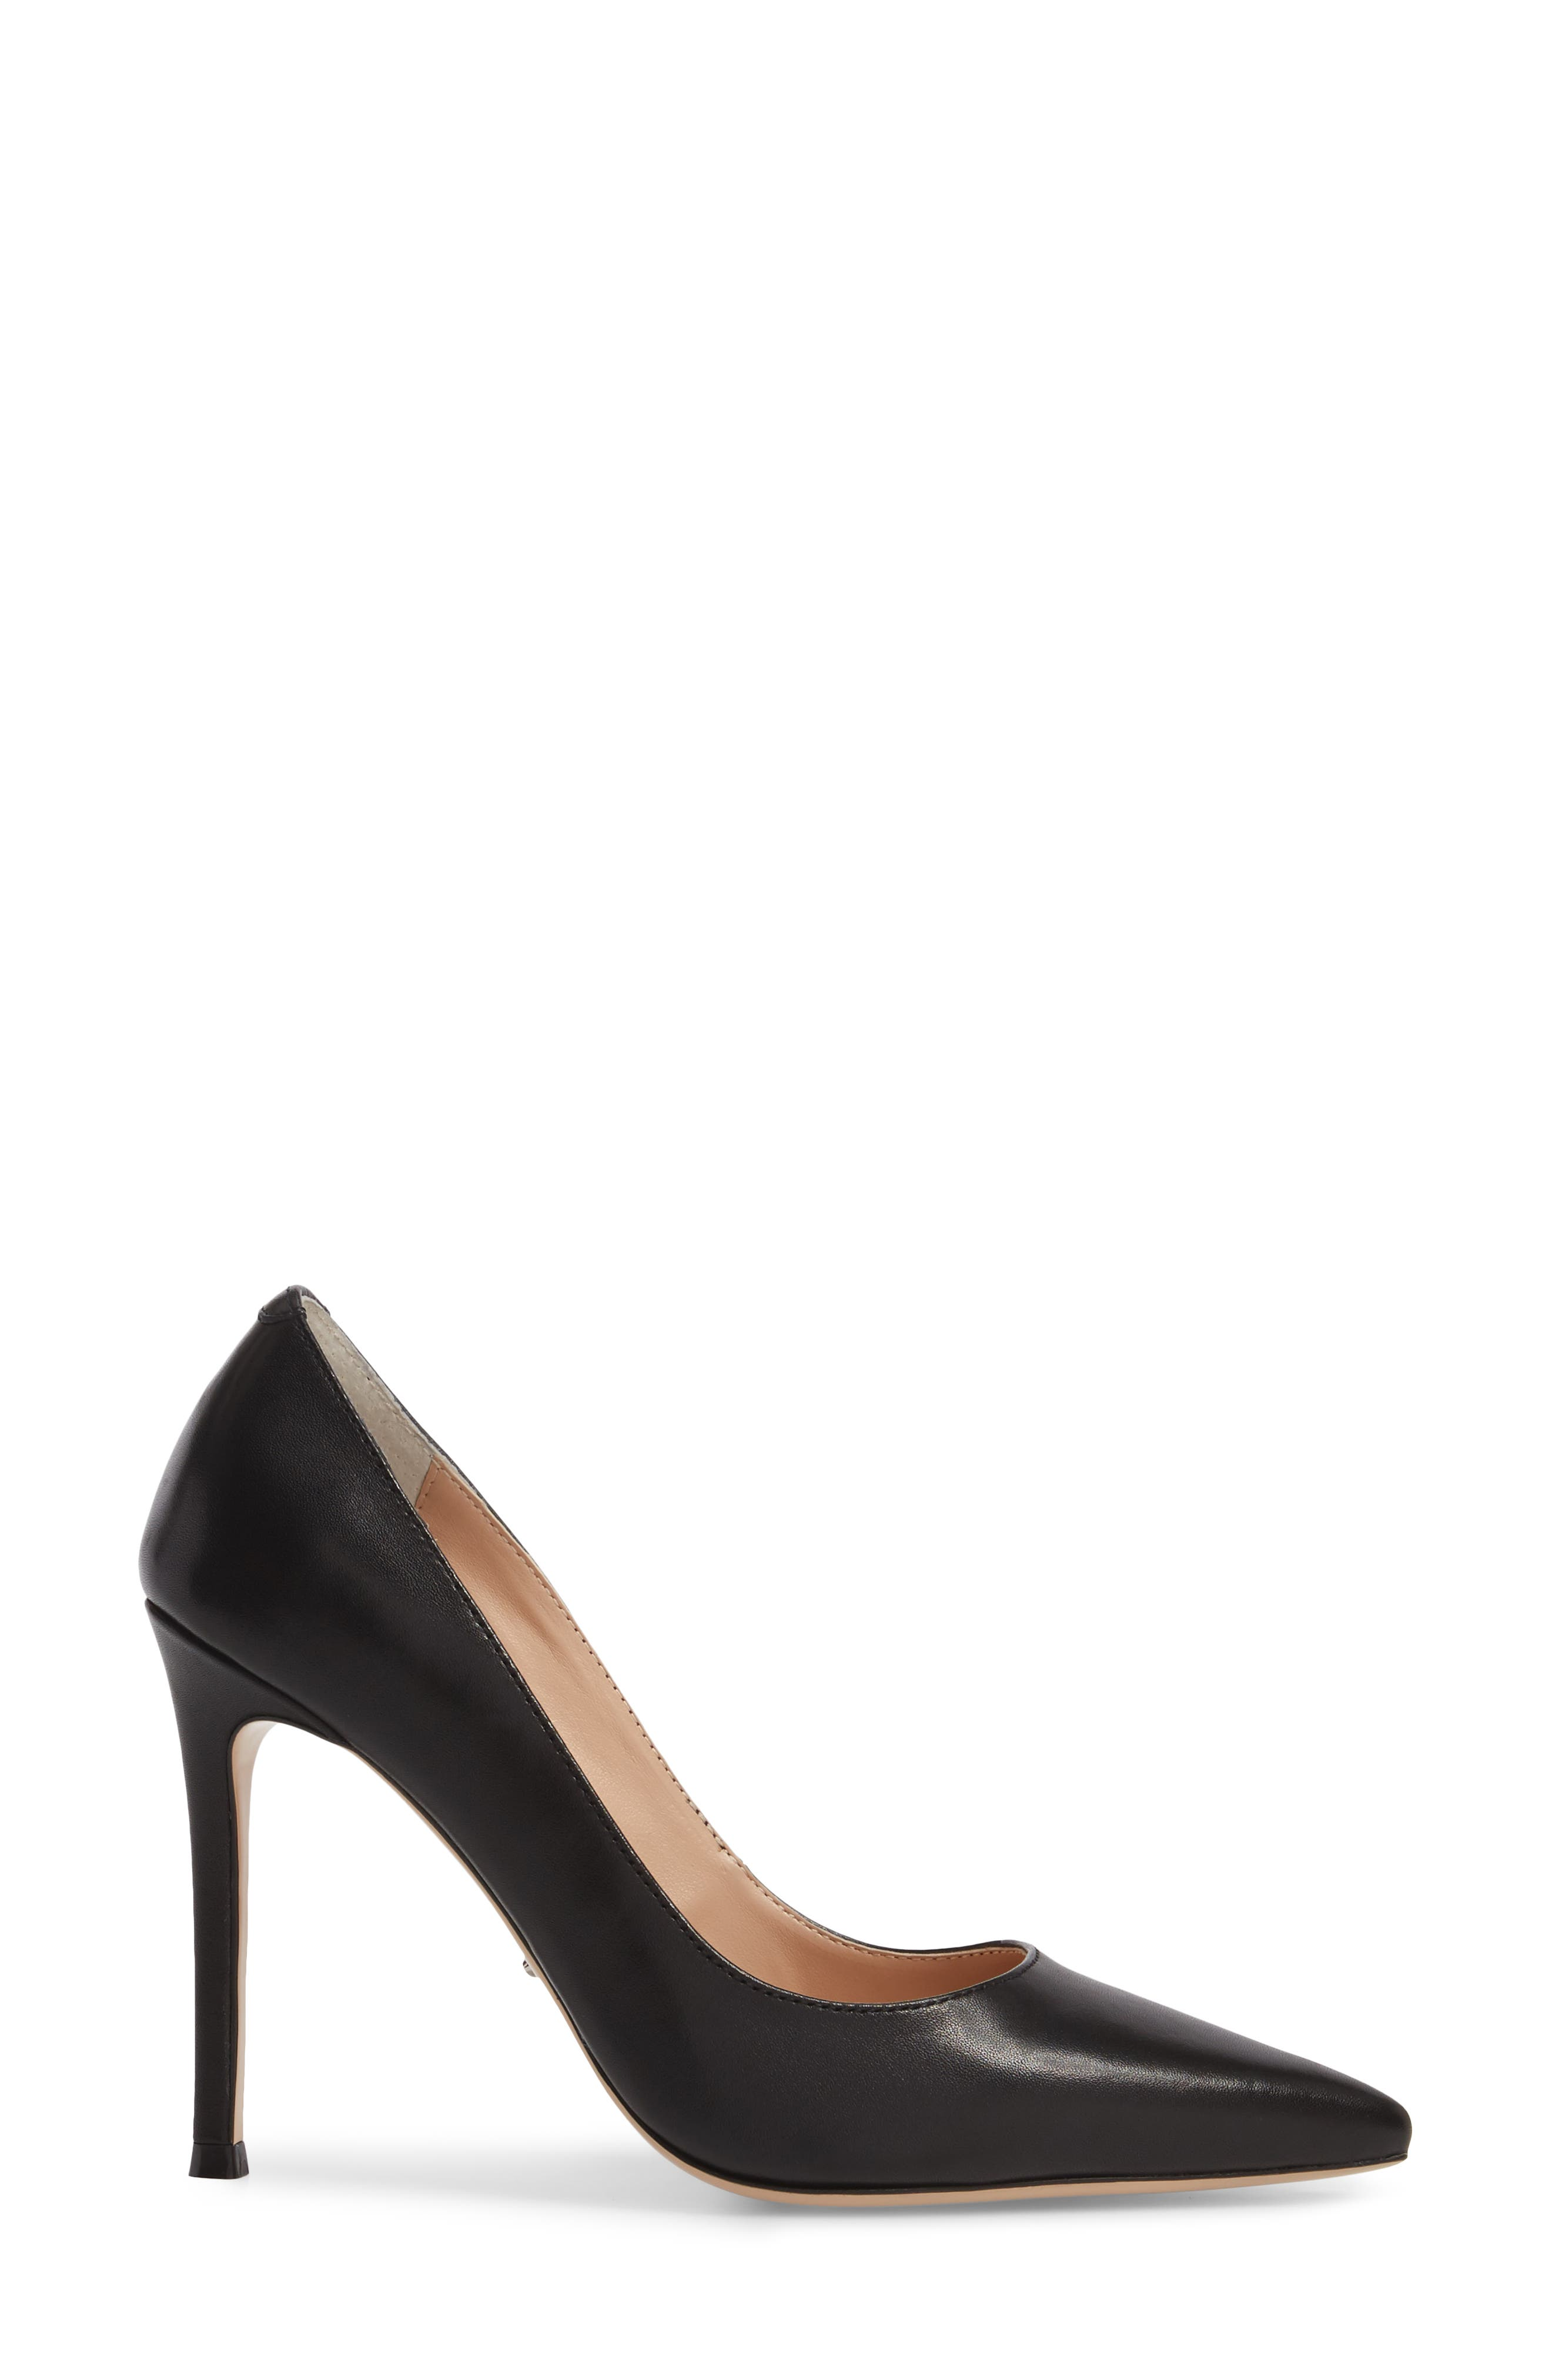 TONY BIANCO, Lotus Pointy Toe Pump, Alternate thumbnail 3, color, 001